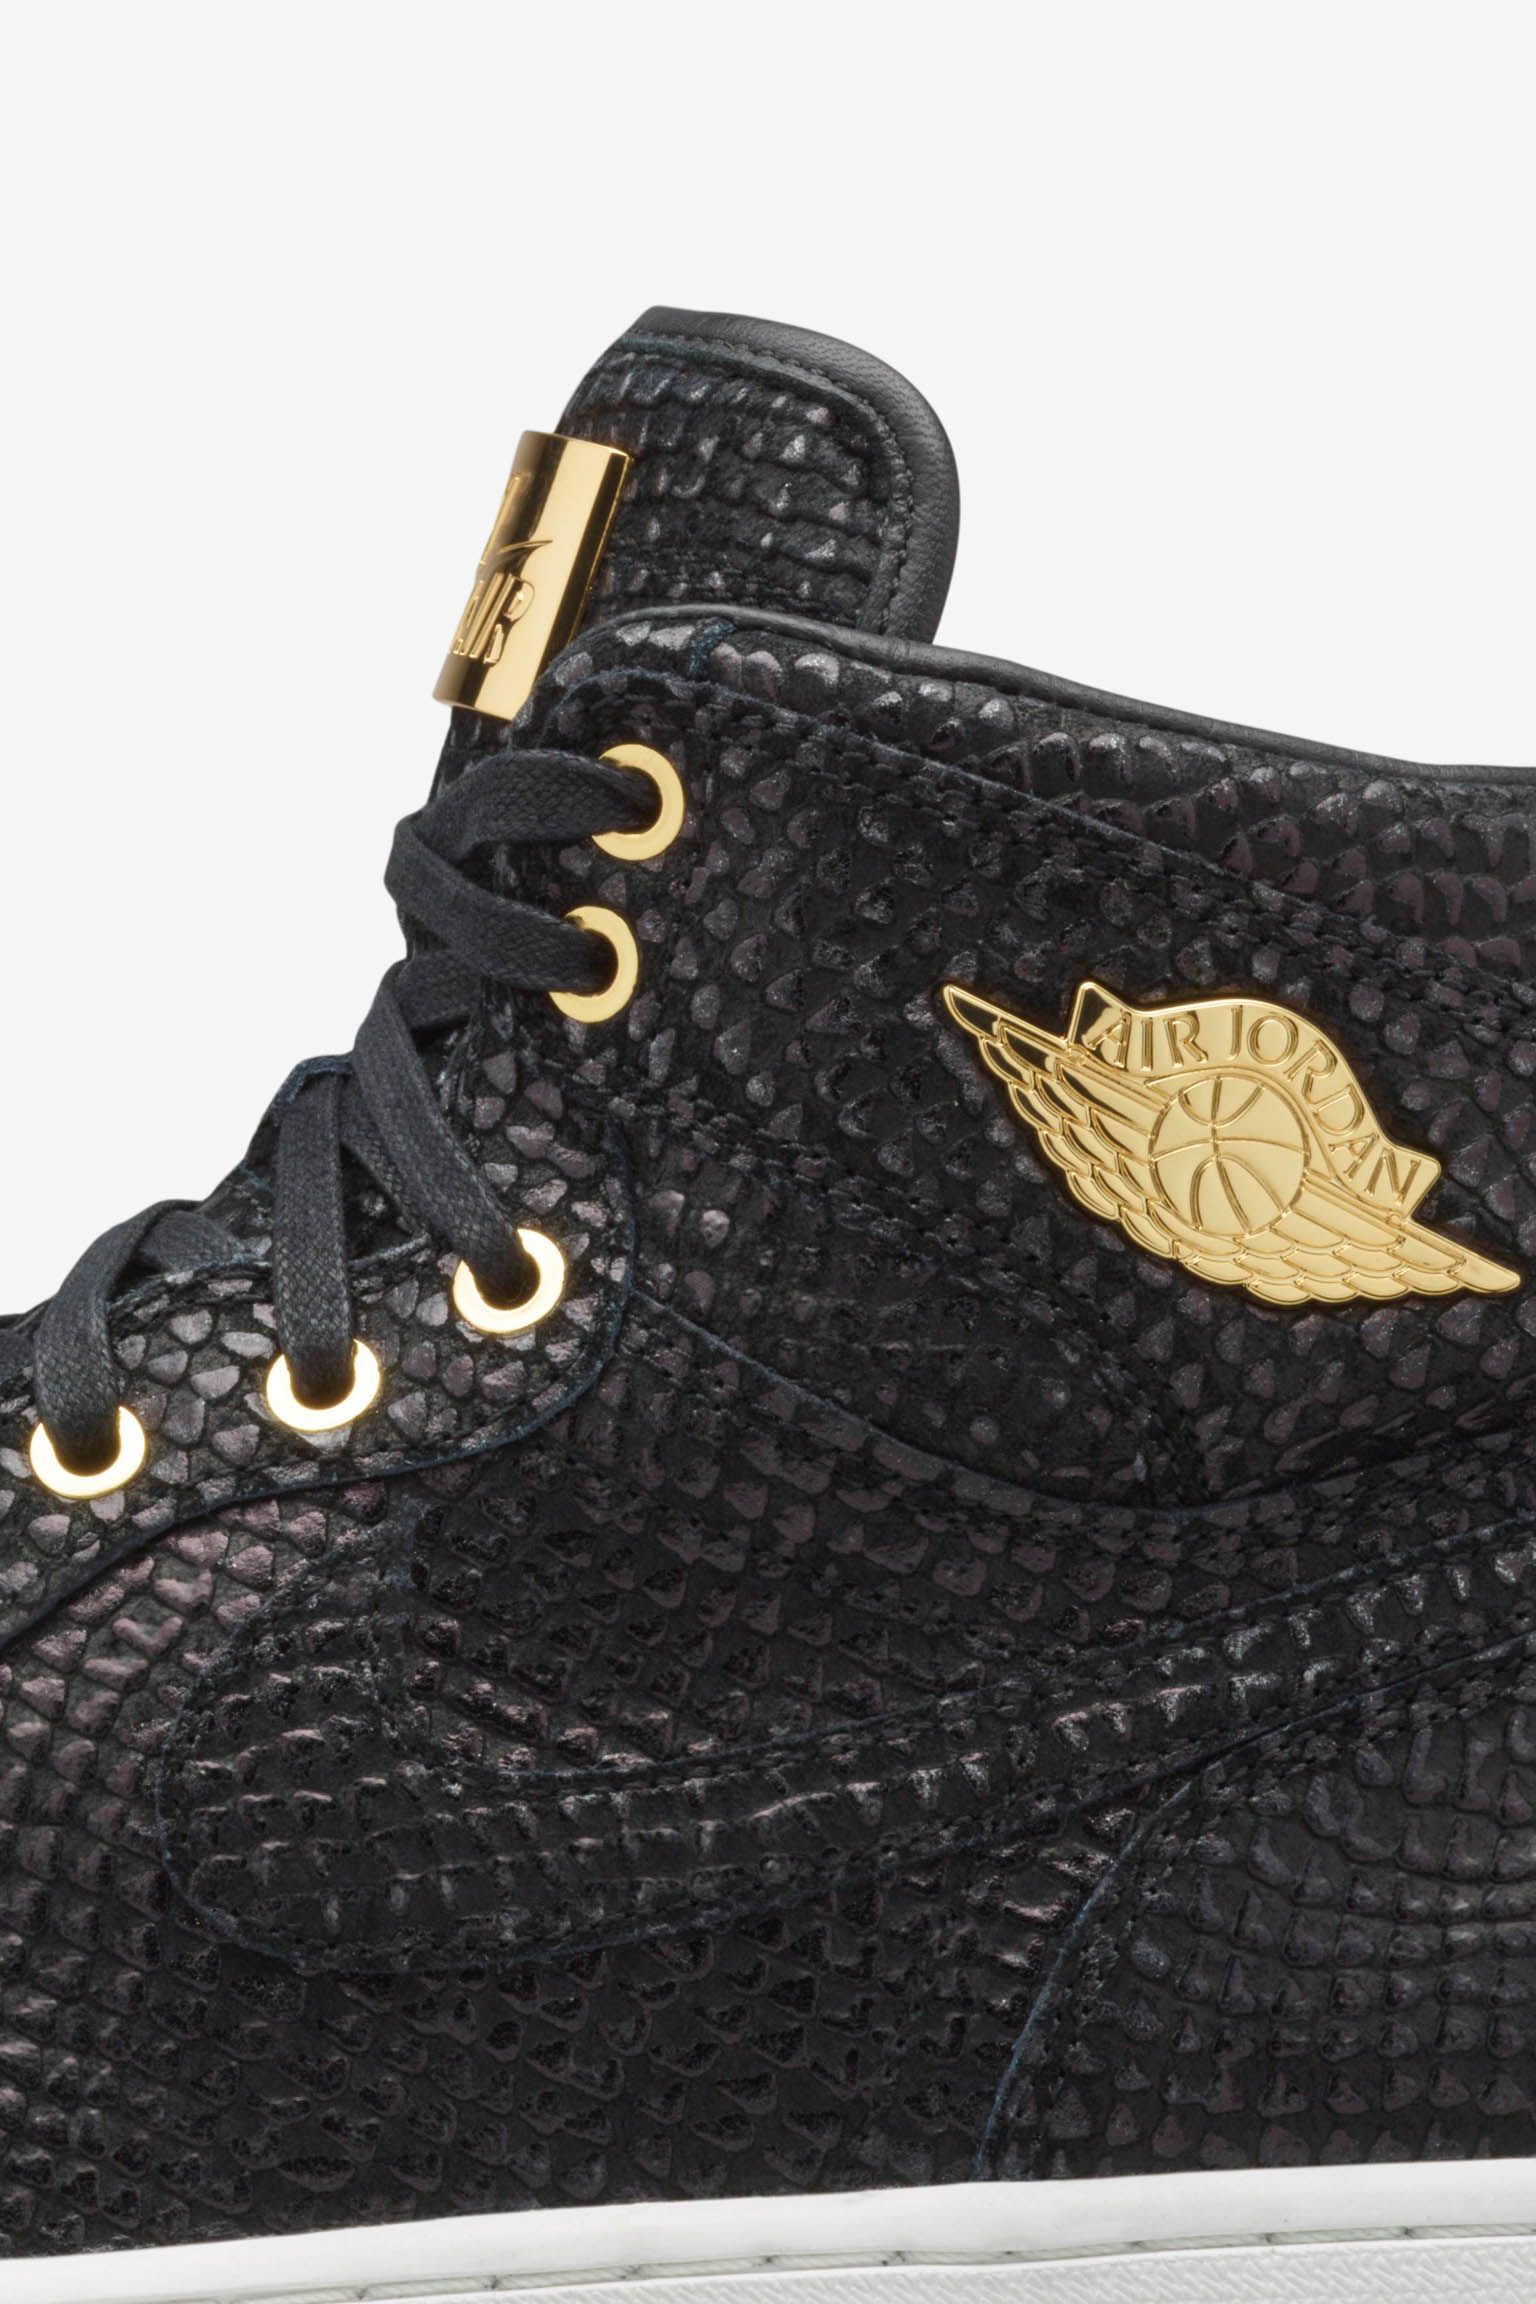 Air Jordan 1 Retro Pinnacle 'Black & Metallic Gold' Release Date